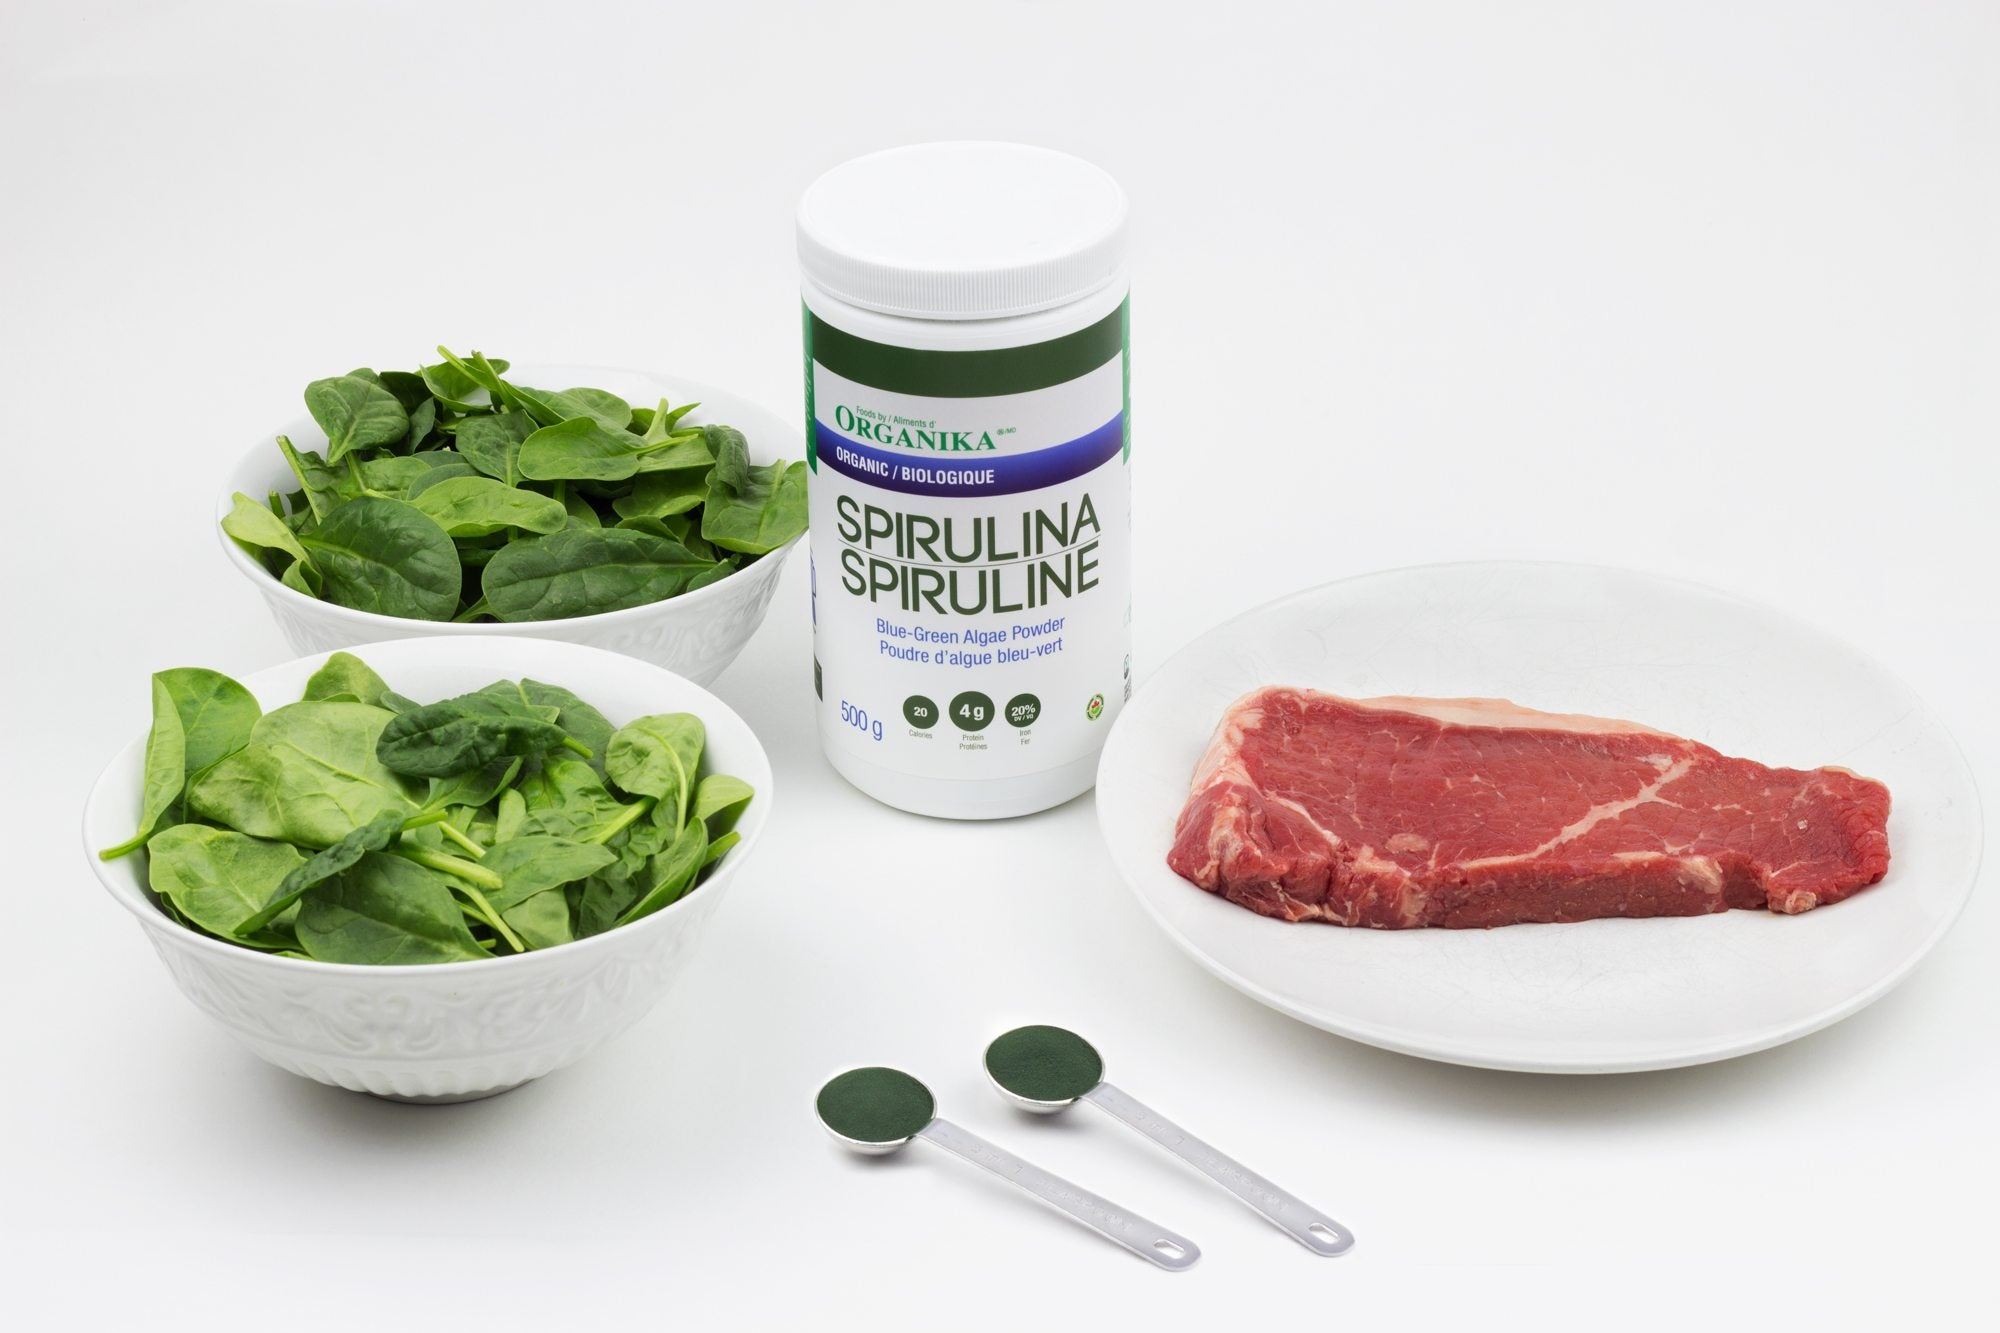 the benefits of spirulina include iron content, providing more than both spinach and steak by weight